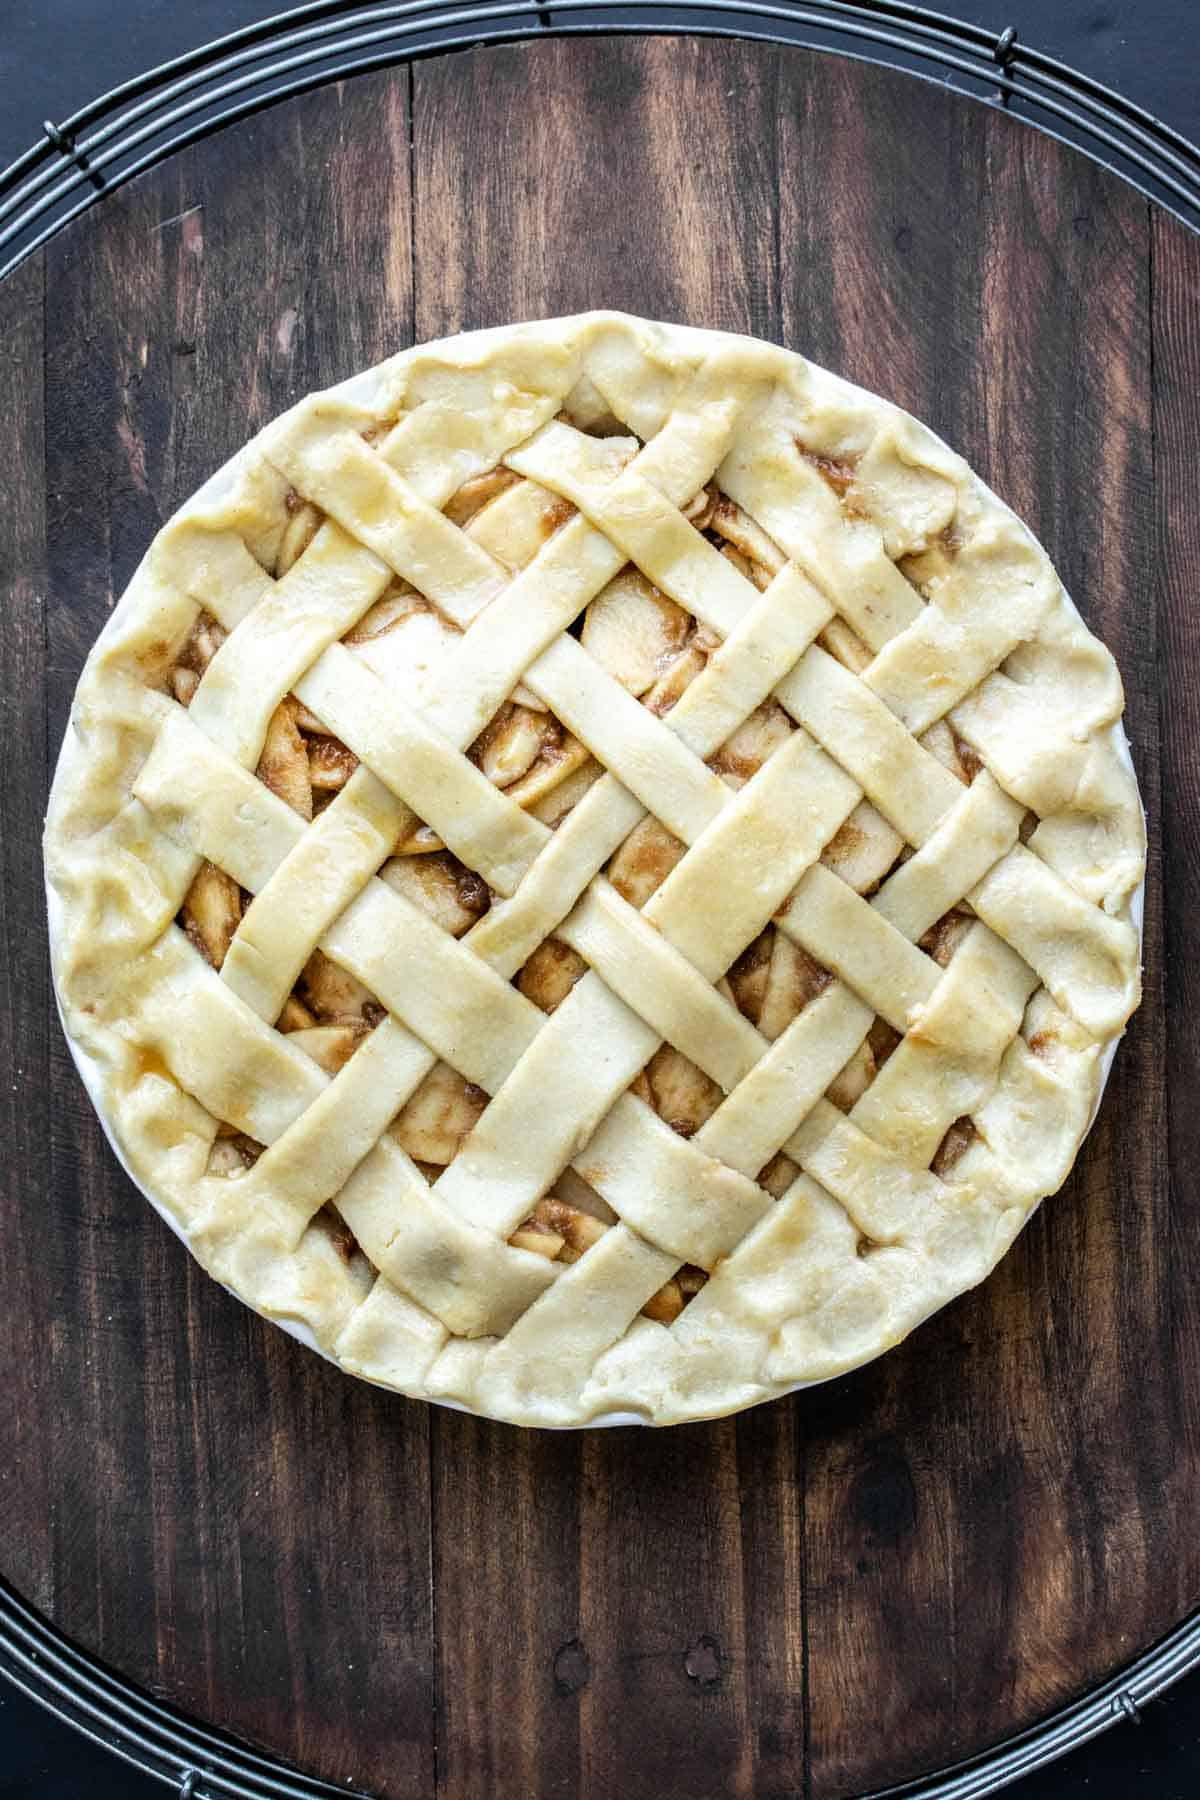 A whole raw lattice topped apple pie